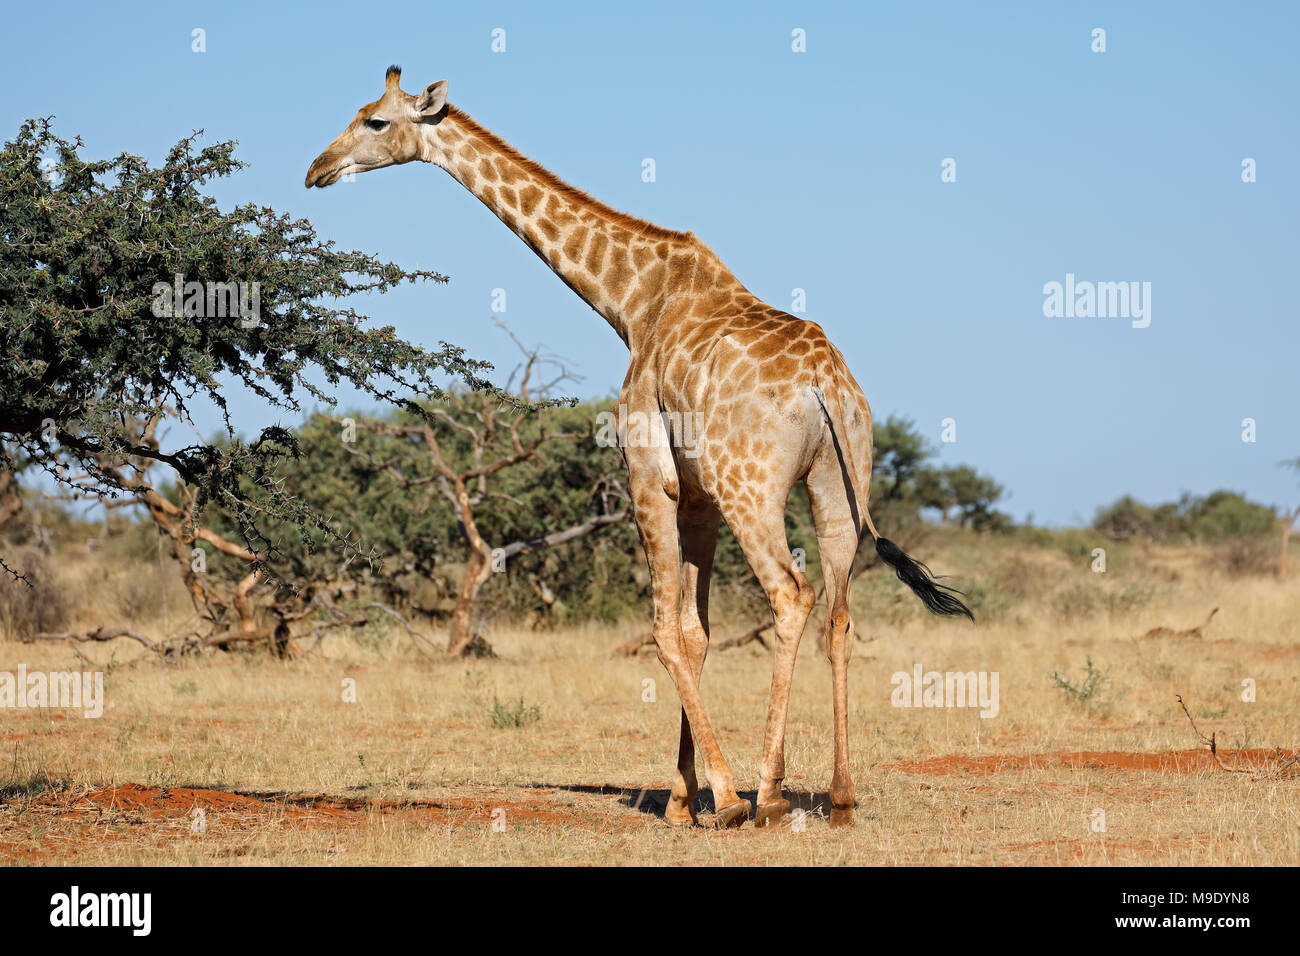 A southern giraffe (Giraffa camelopardalis) in natural habitat, South Africa Stock Photo